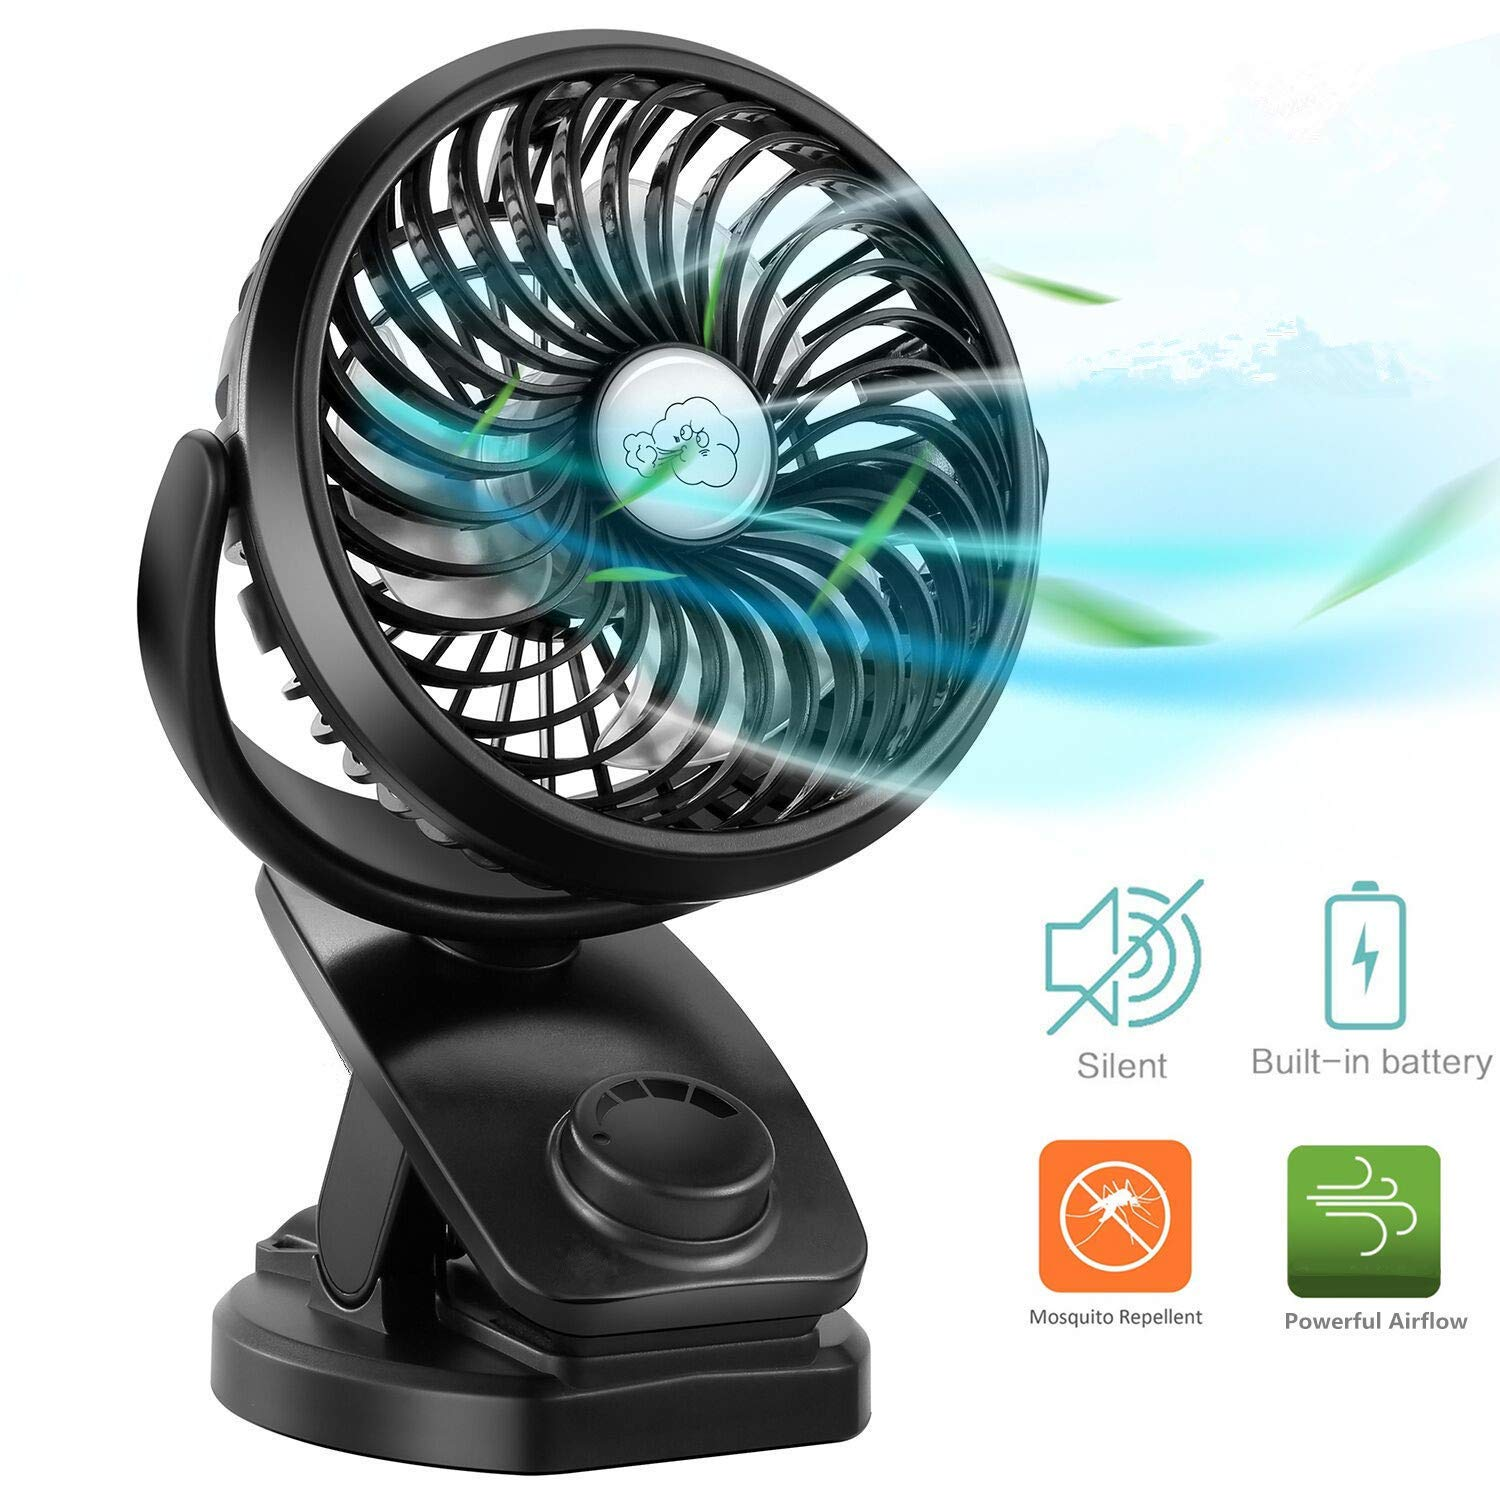 COMLIFE Portable Fan F150, USB Desk Fan with Rechargeable 4400 mAh Battery,Mini Clip on Fan with Powerbank &Aroma Diffuser Function,Stepless Speeds, Ideal for Stroller, Camping, Office, Outdoor,Travel by COMLIFE (Image #1)